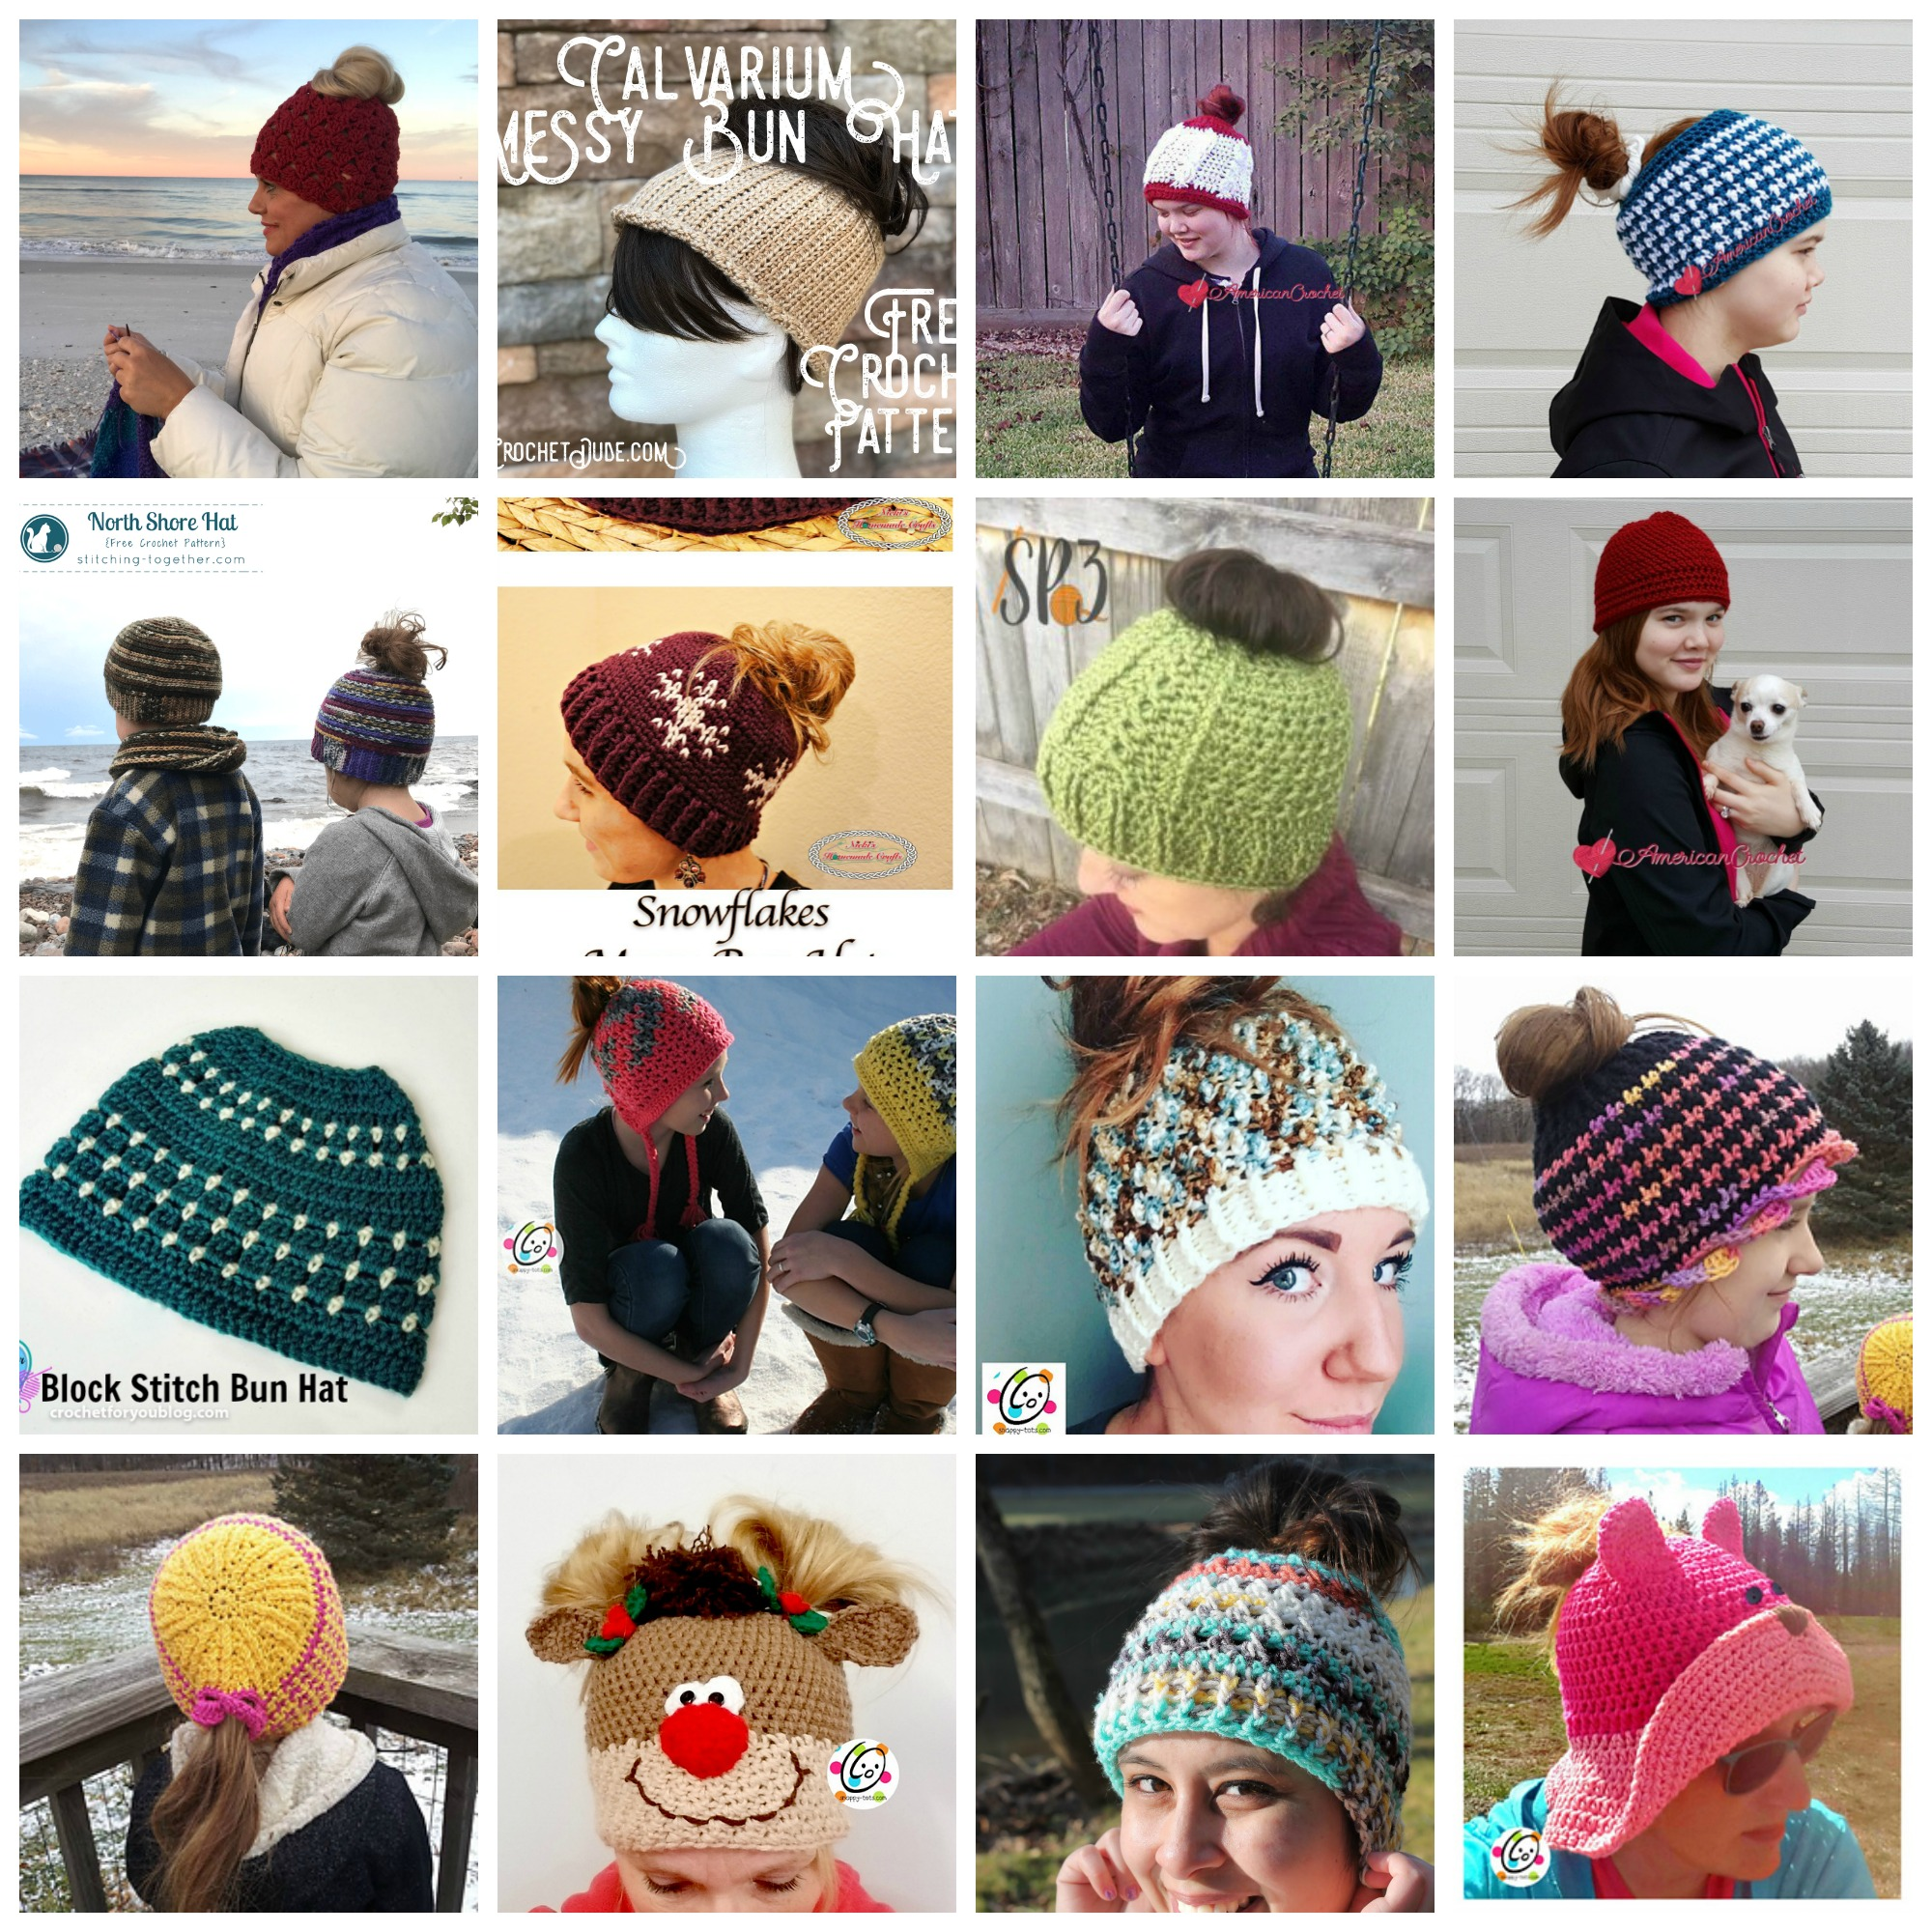 How to Cast on for a Knit Messy Bun Hat Free Pattern — Kristin Omdahl b80f205928b